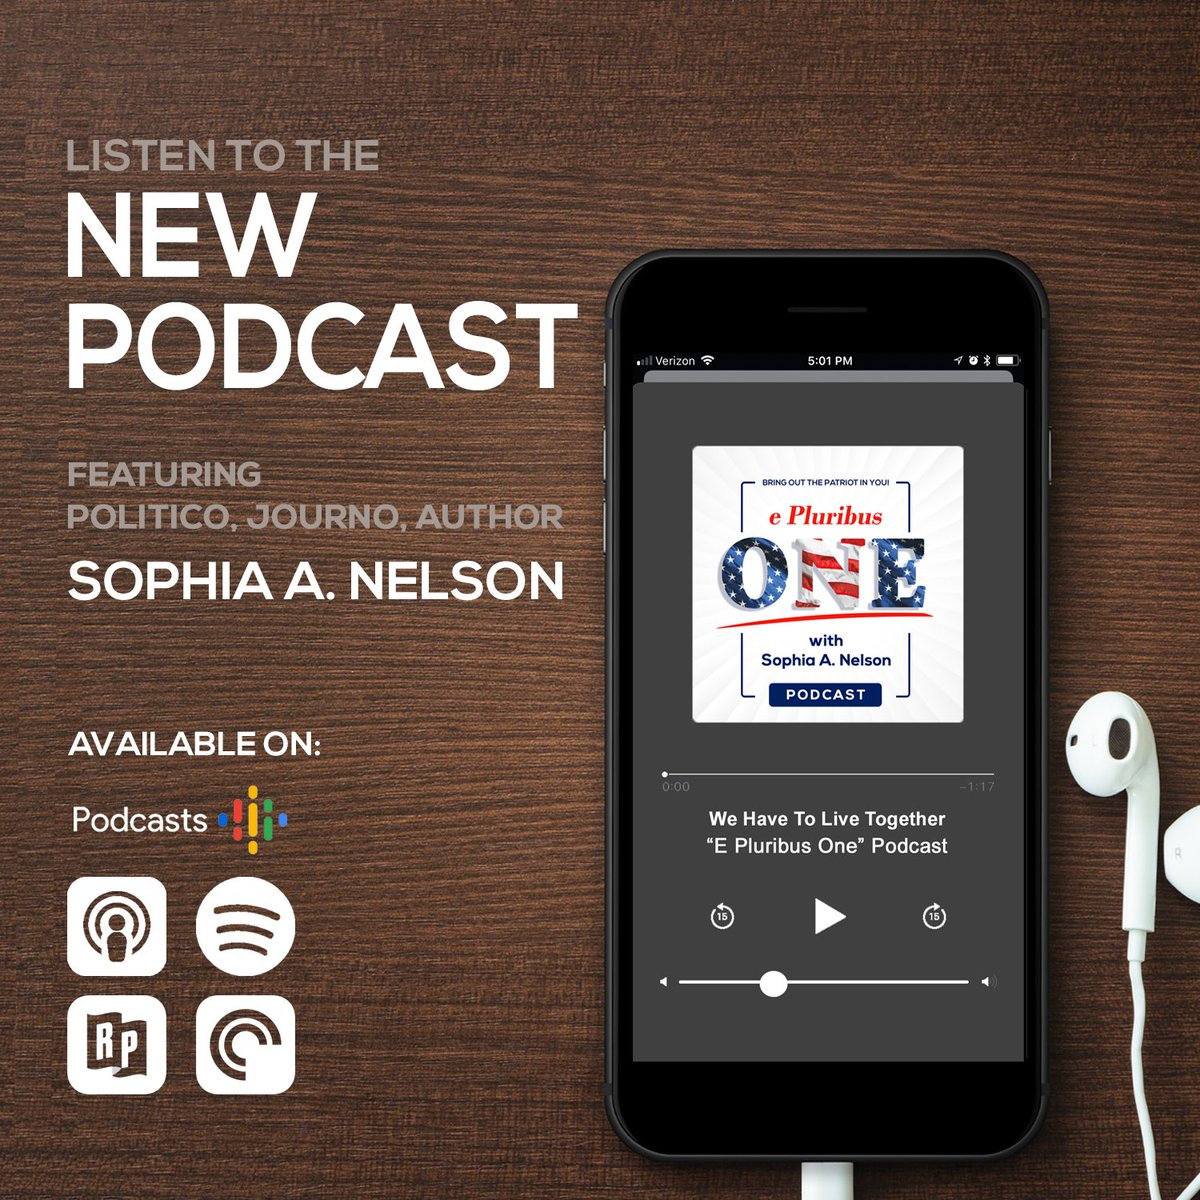 Good morning! Start the day with your morning coffee and my new #podcast about America, Politics & Culture. Playing 4 episodes now! #epluribusone #MondayMorning #MorningCoffee #morningmotivation<br>http://pic.twitter.com/9UXjpEhwHE